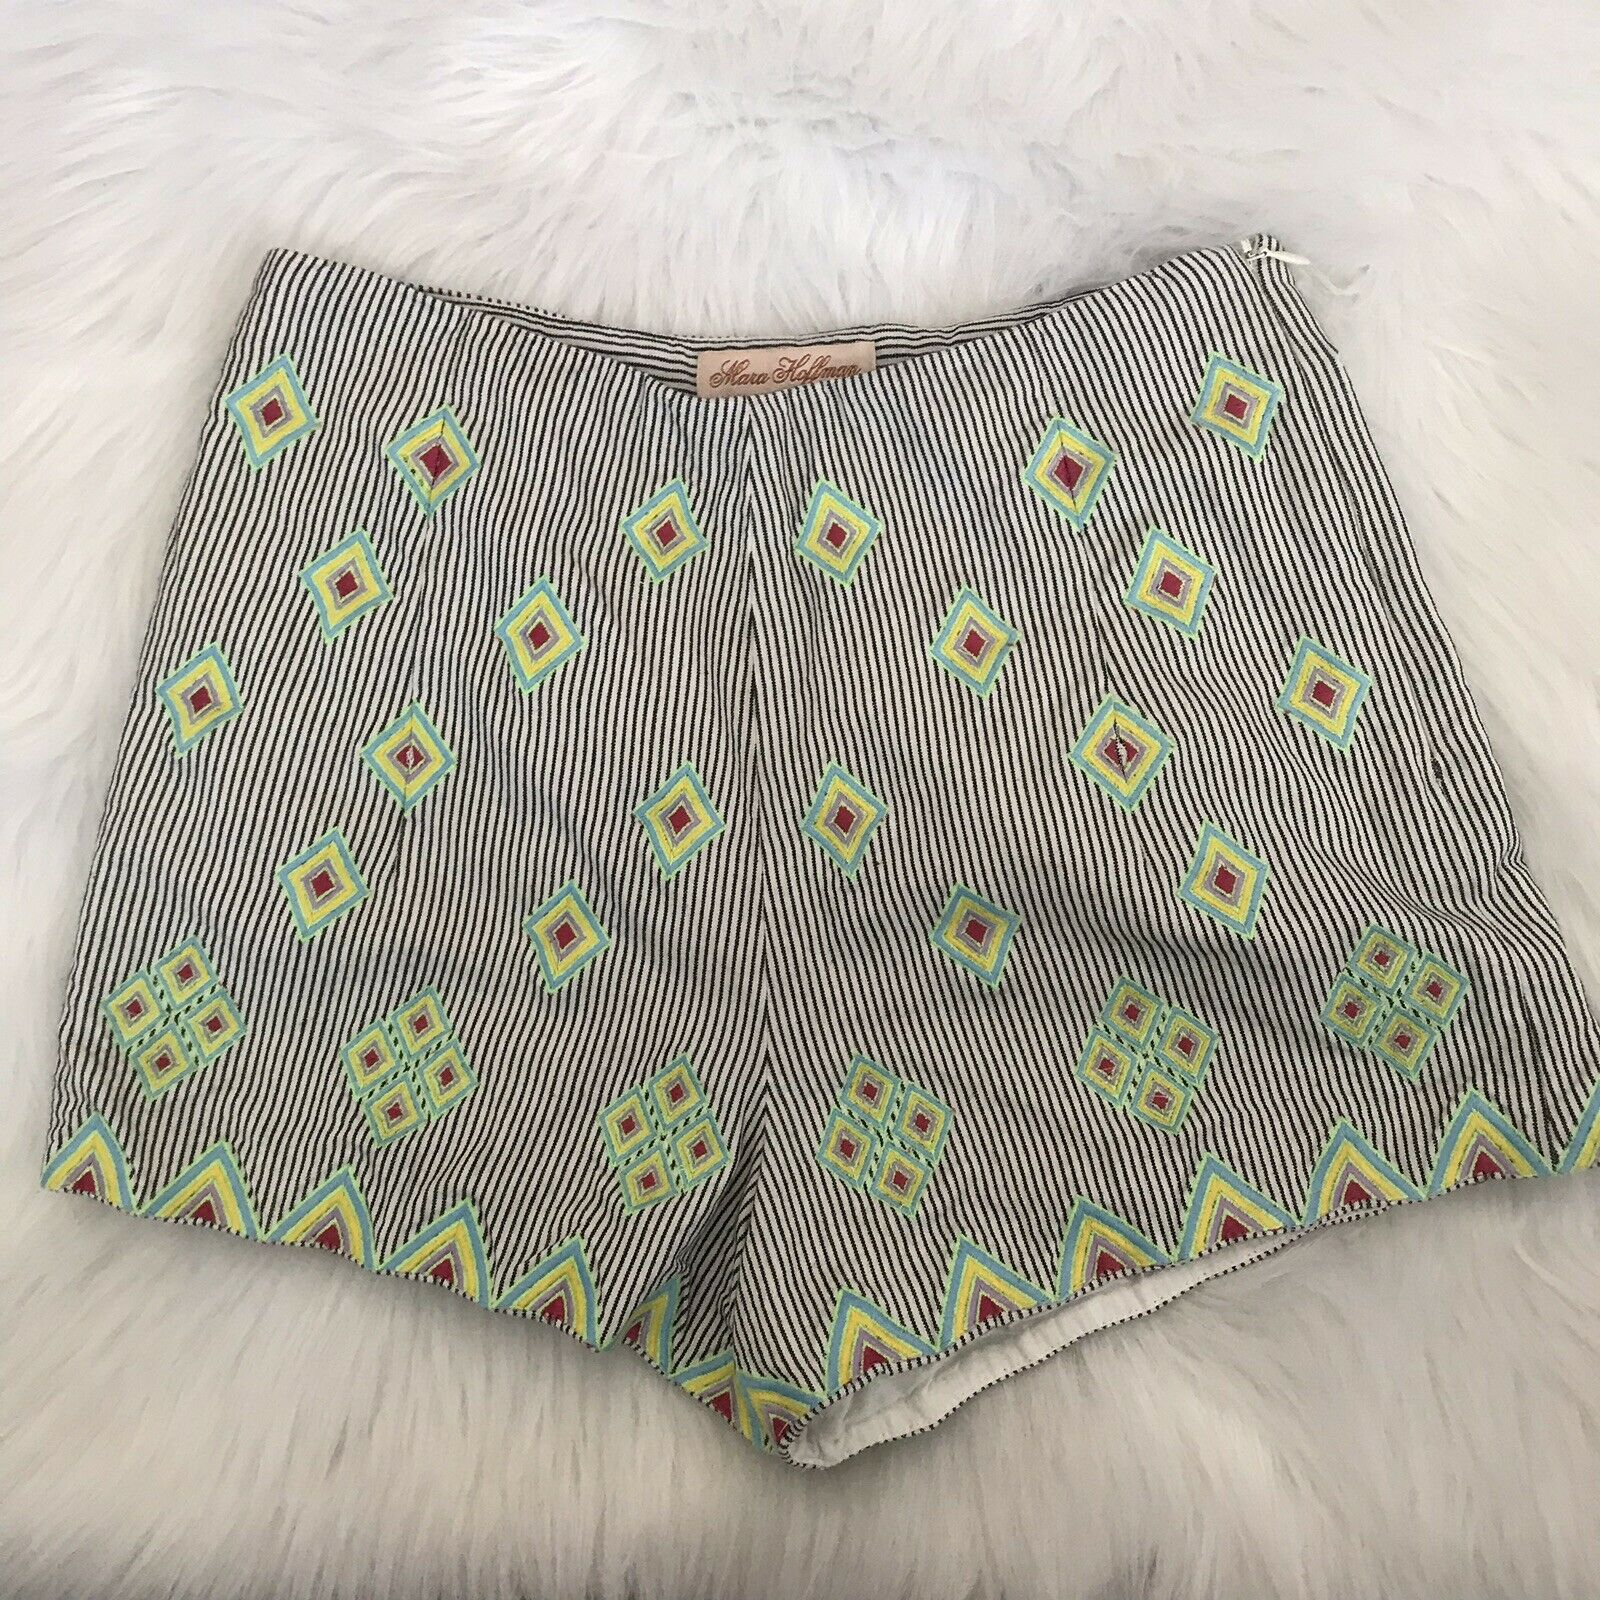 246 MARA HOFFMAN HIGH WAISTED PIN STRIPED GEOMETRIC RESORT SHORTS WOMENS SIZE 2